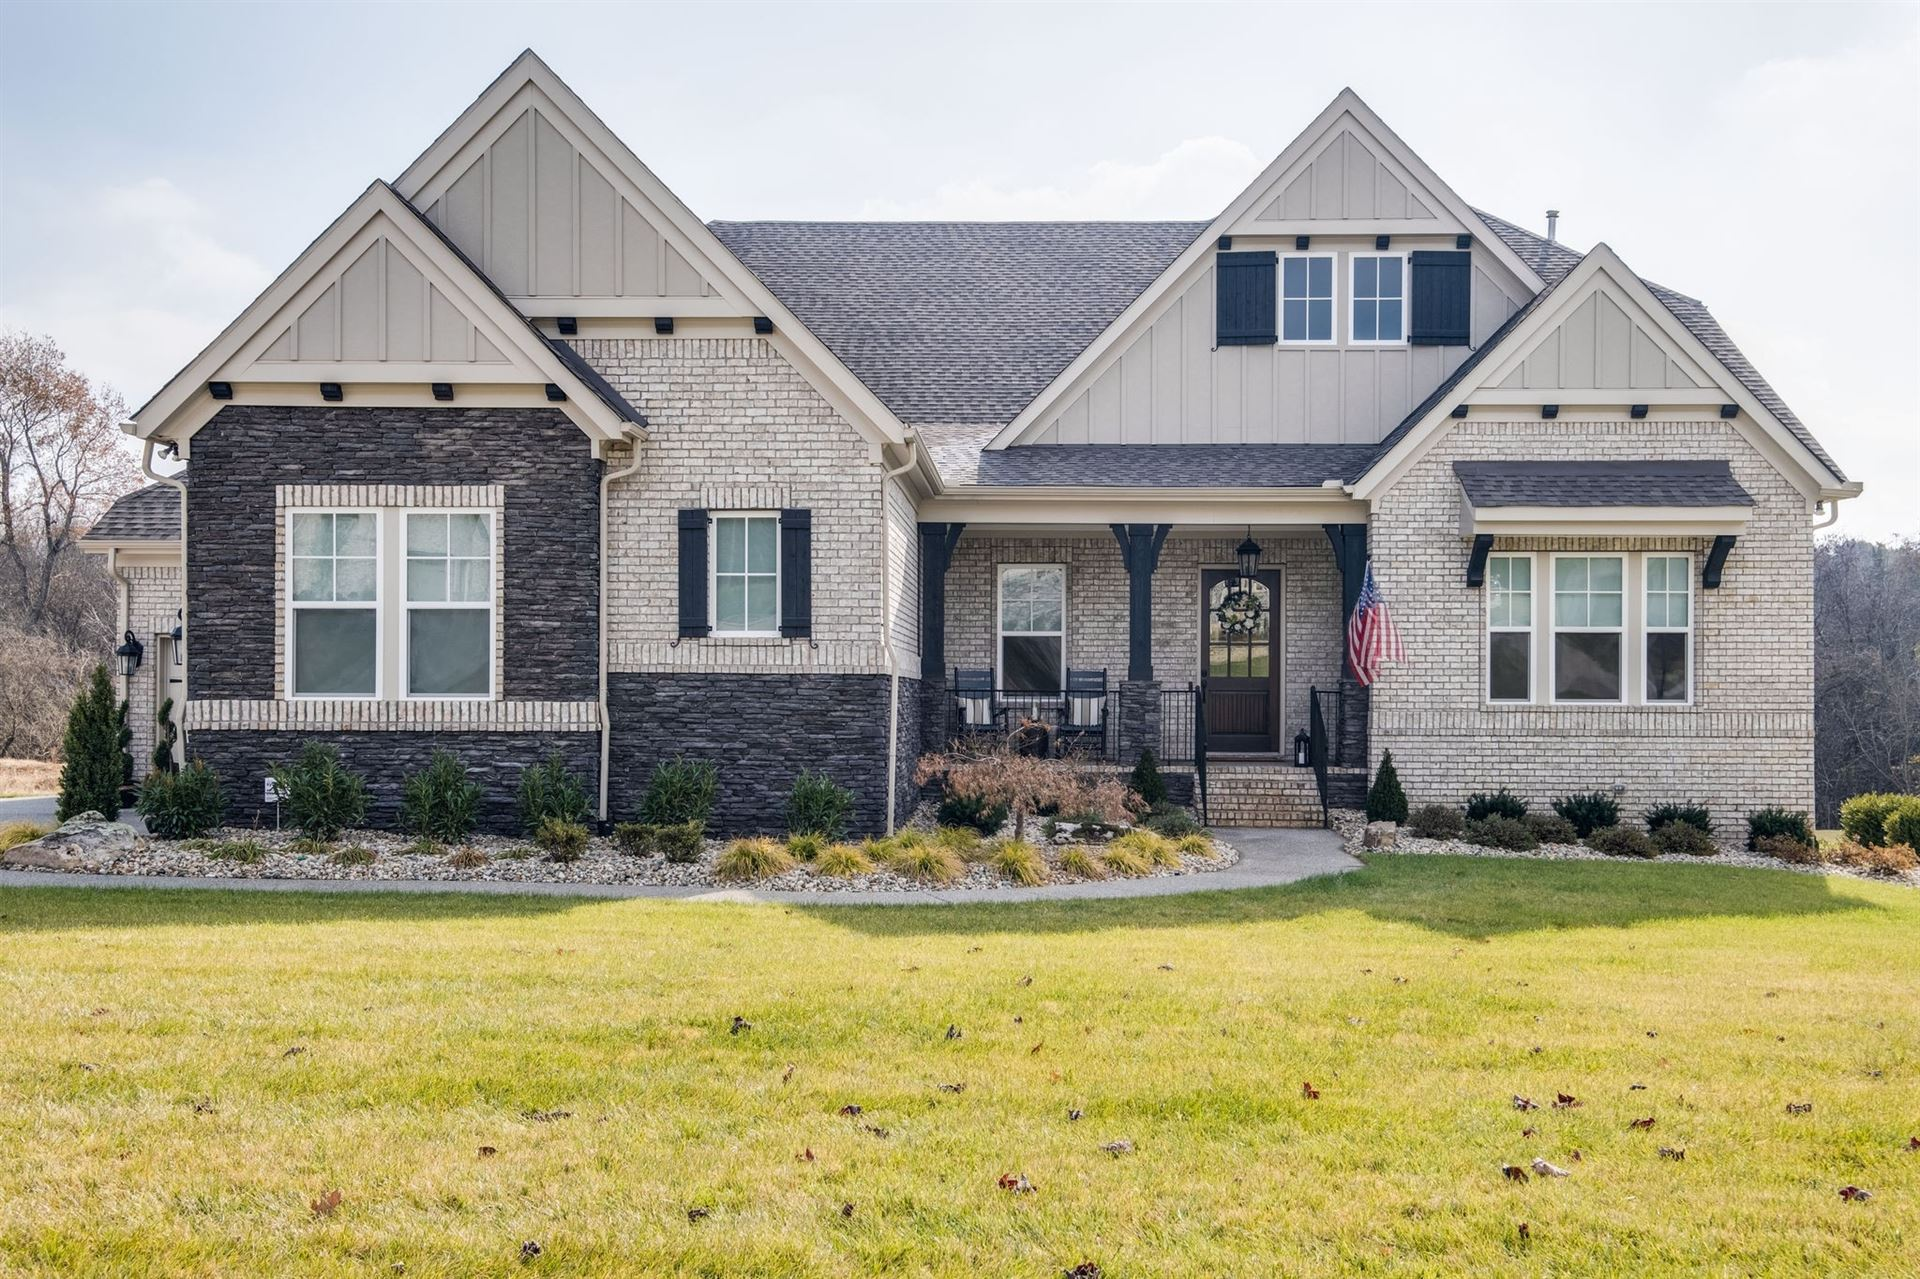 Photo of 1932 Parade Dr, Brentwood, TN 37027 (MLS # 2133581)